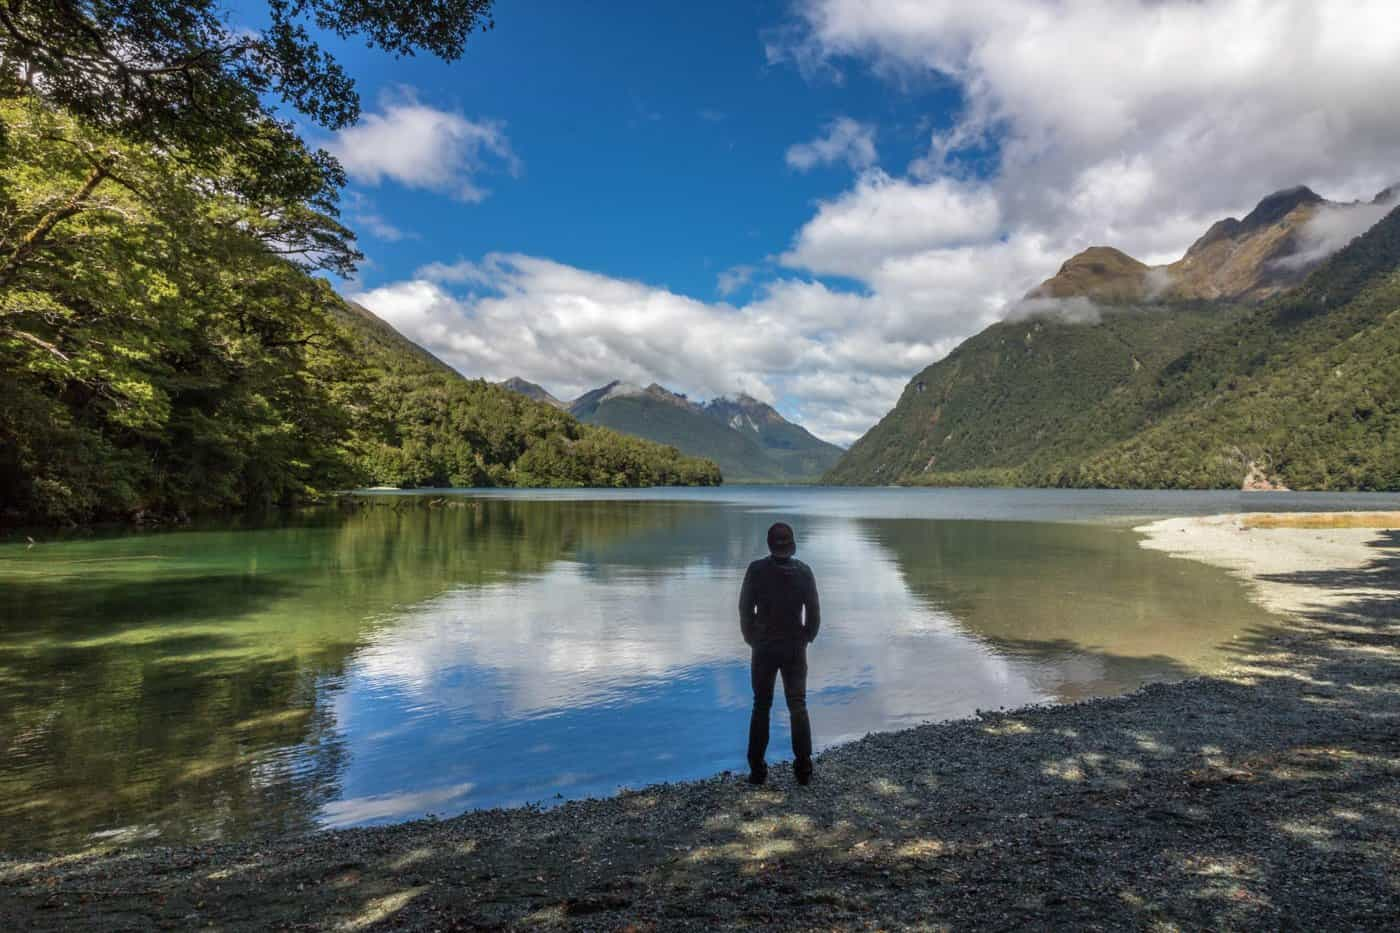 Lake Gunn is a quick, beautiful stop on the way to Milford Sound from Queenstown.